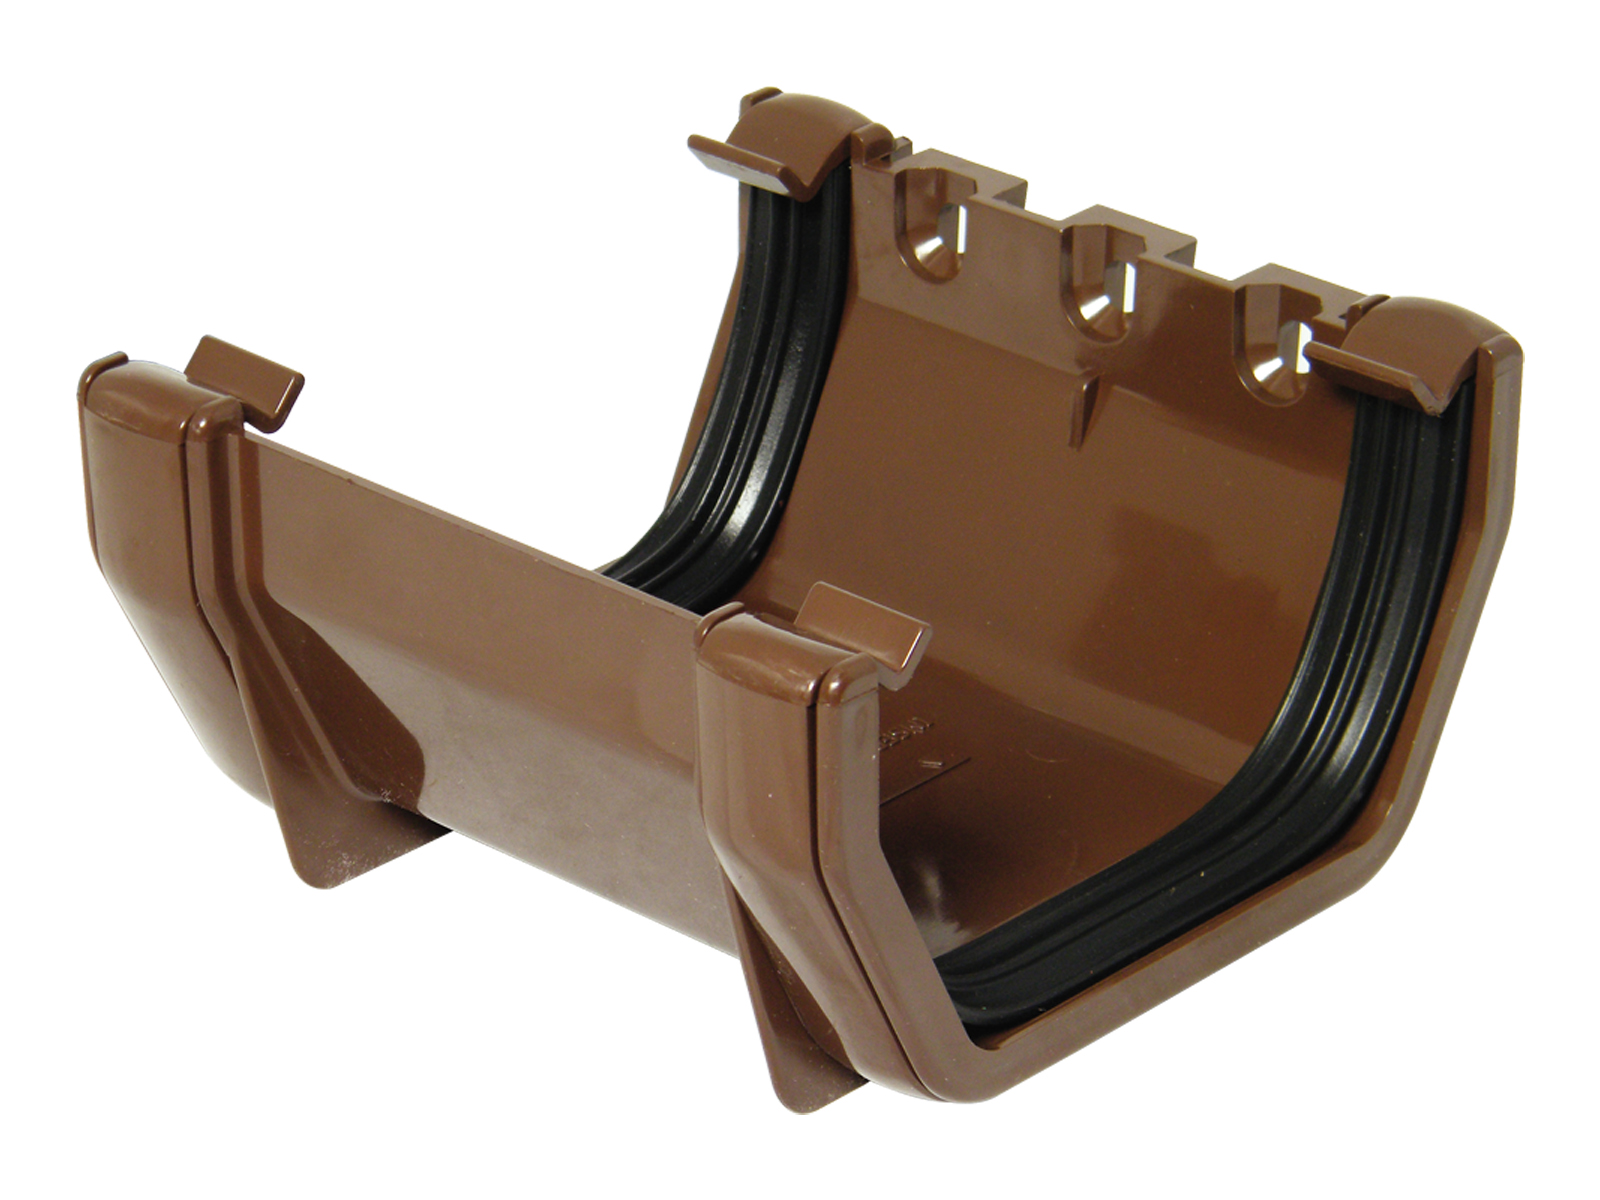 FLOPLAST SQUARE LINE GUTTER - RUS1 UNION BRACKET - BROWN